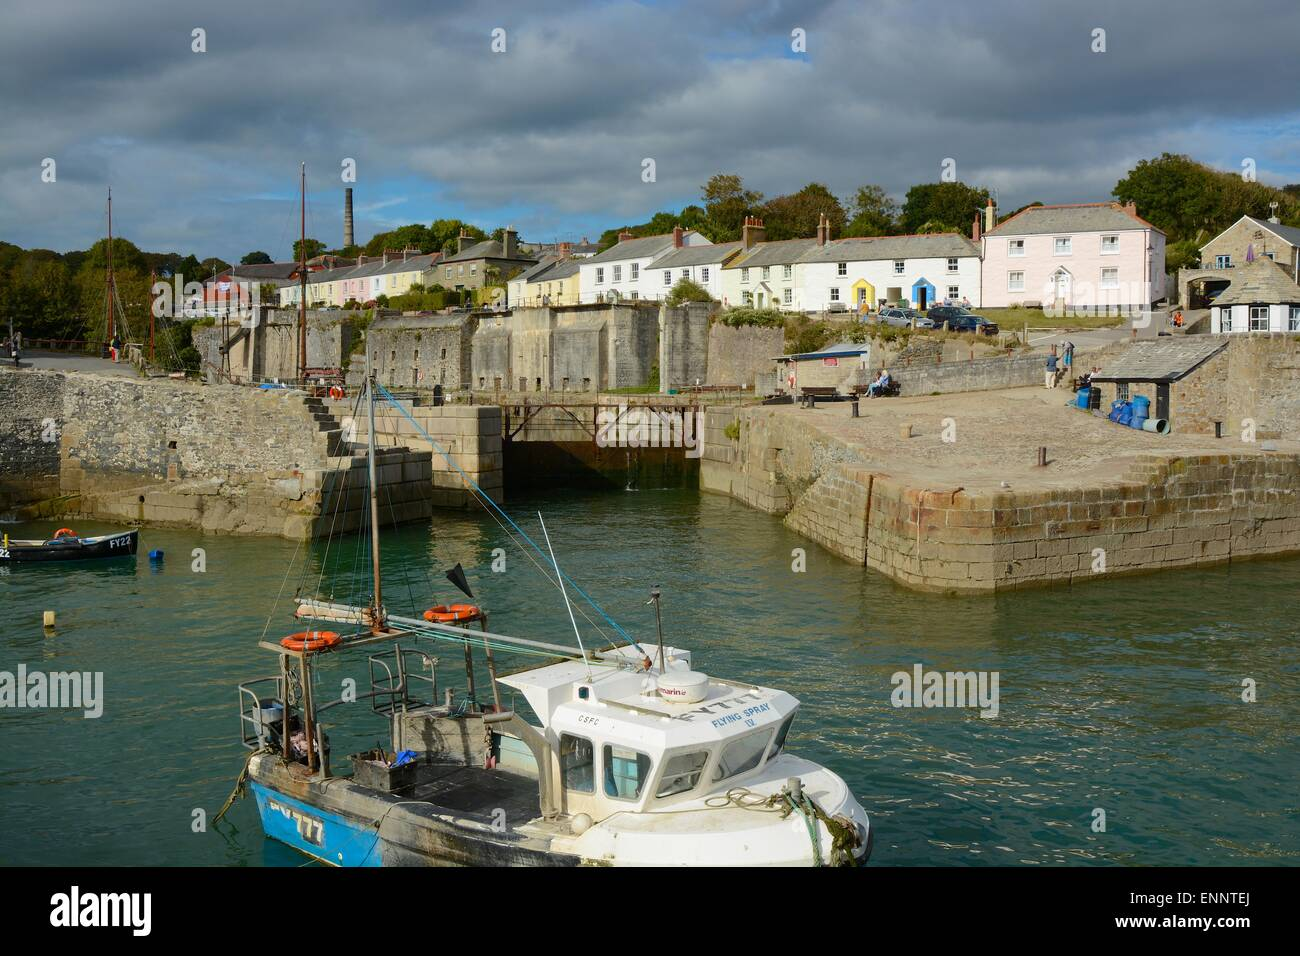 Charlestown Harbour entrance in Cornwall, England. With people walking and sitting and fishing boat in foreground - Stock Image